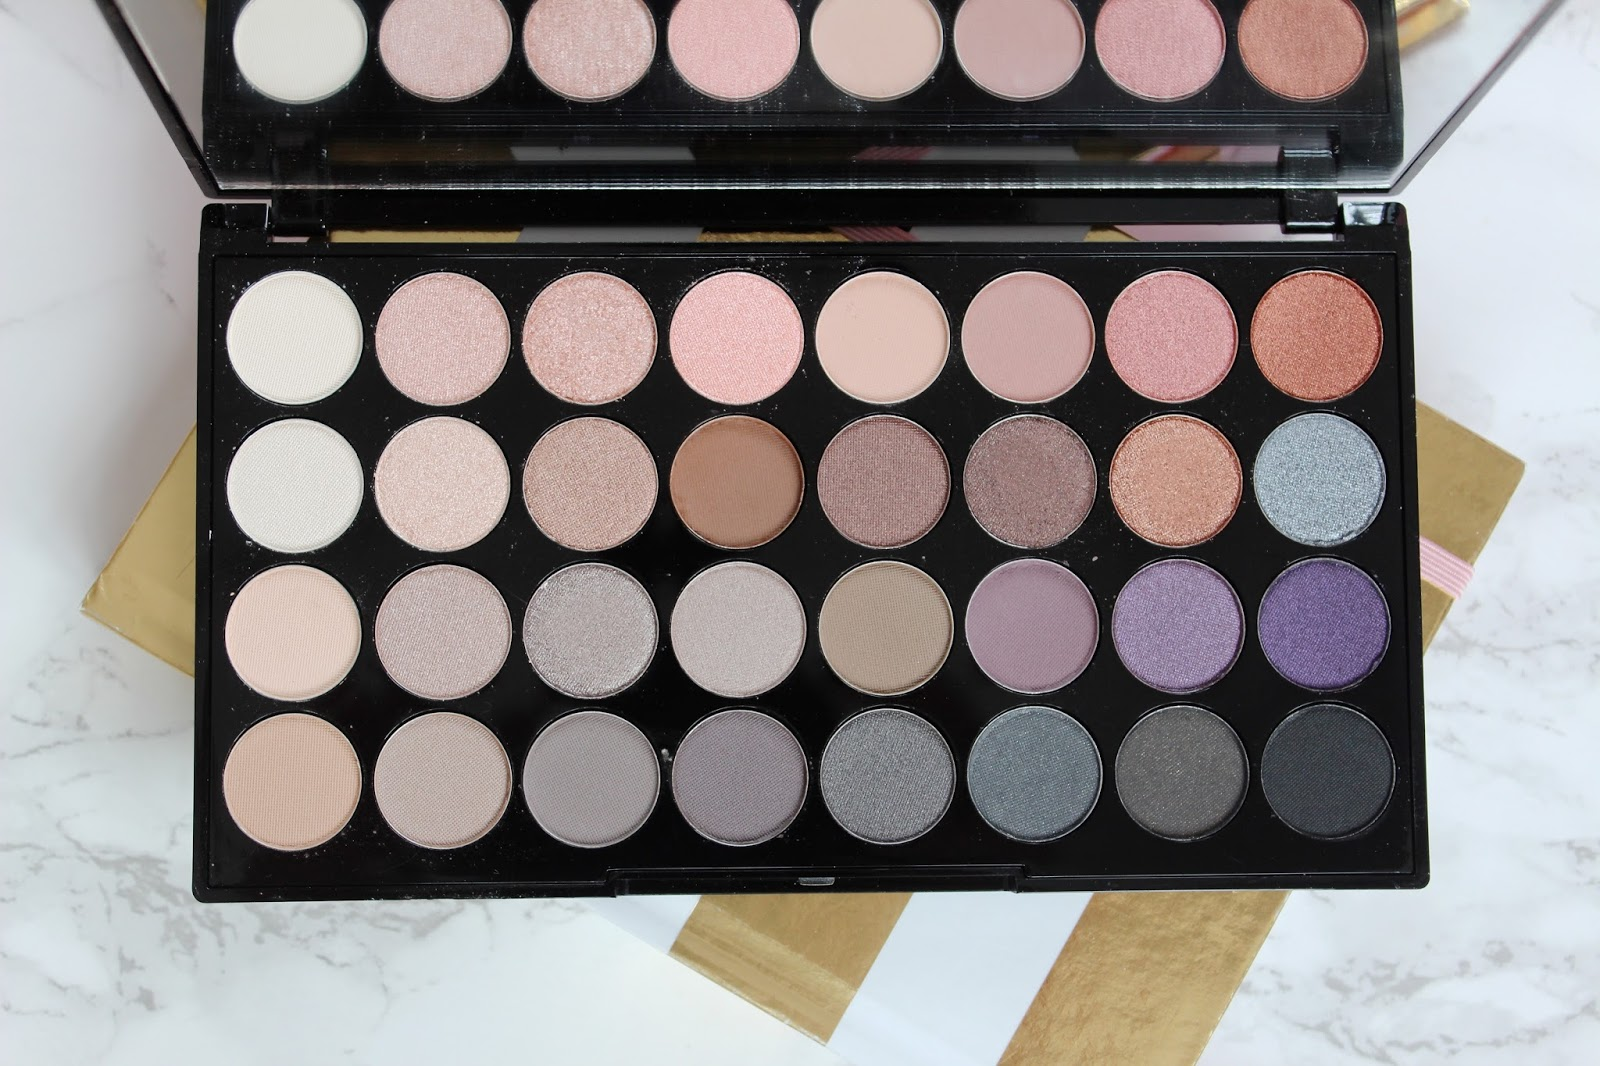 ... Makeup Revolution contains 32 gorgeous shades that so wearable, that I just couldn't wait to get stuck in. The shade choice here is almost overwhelming, ...